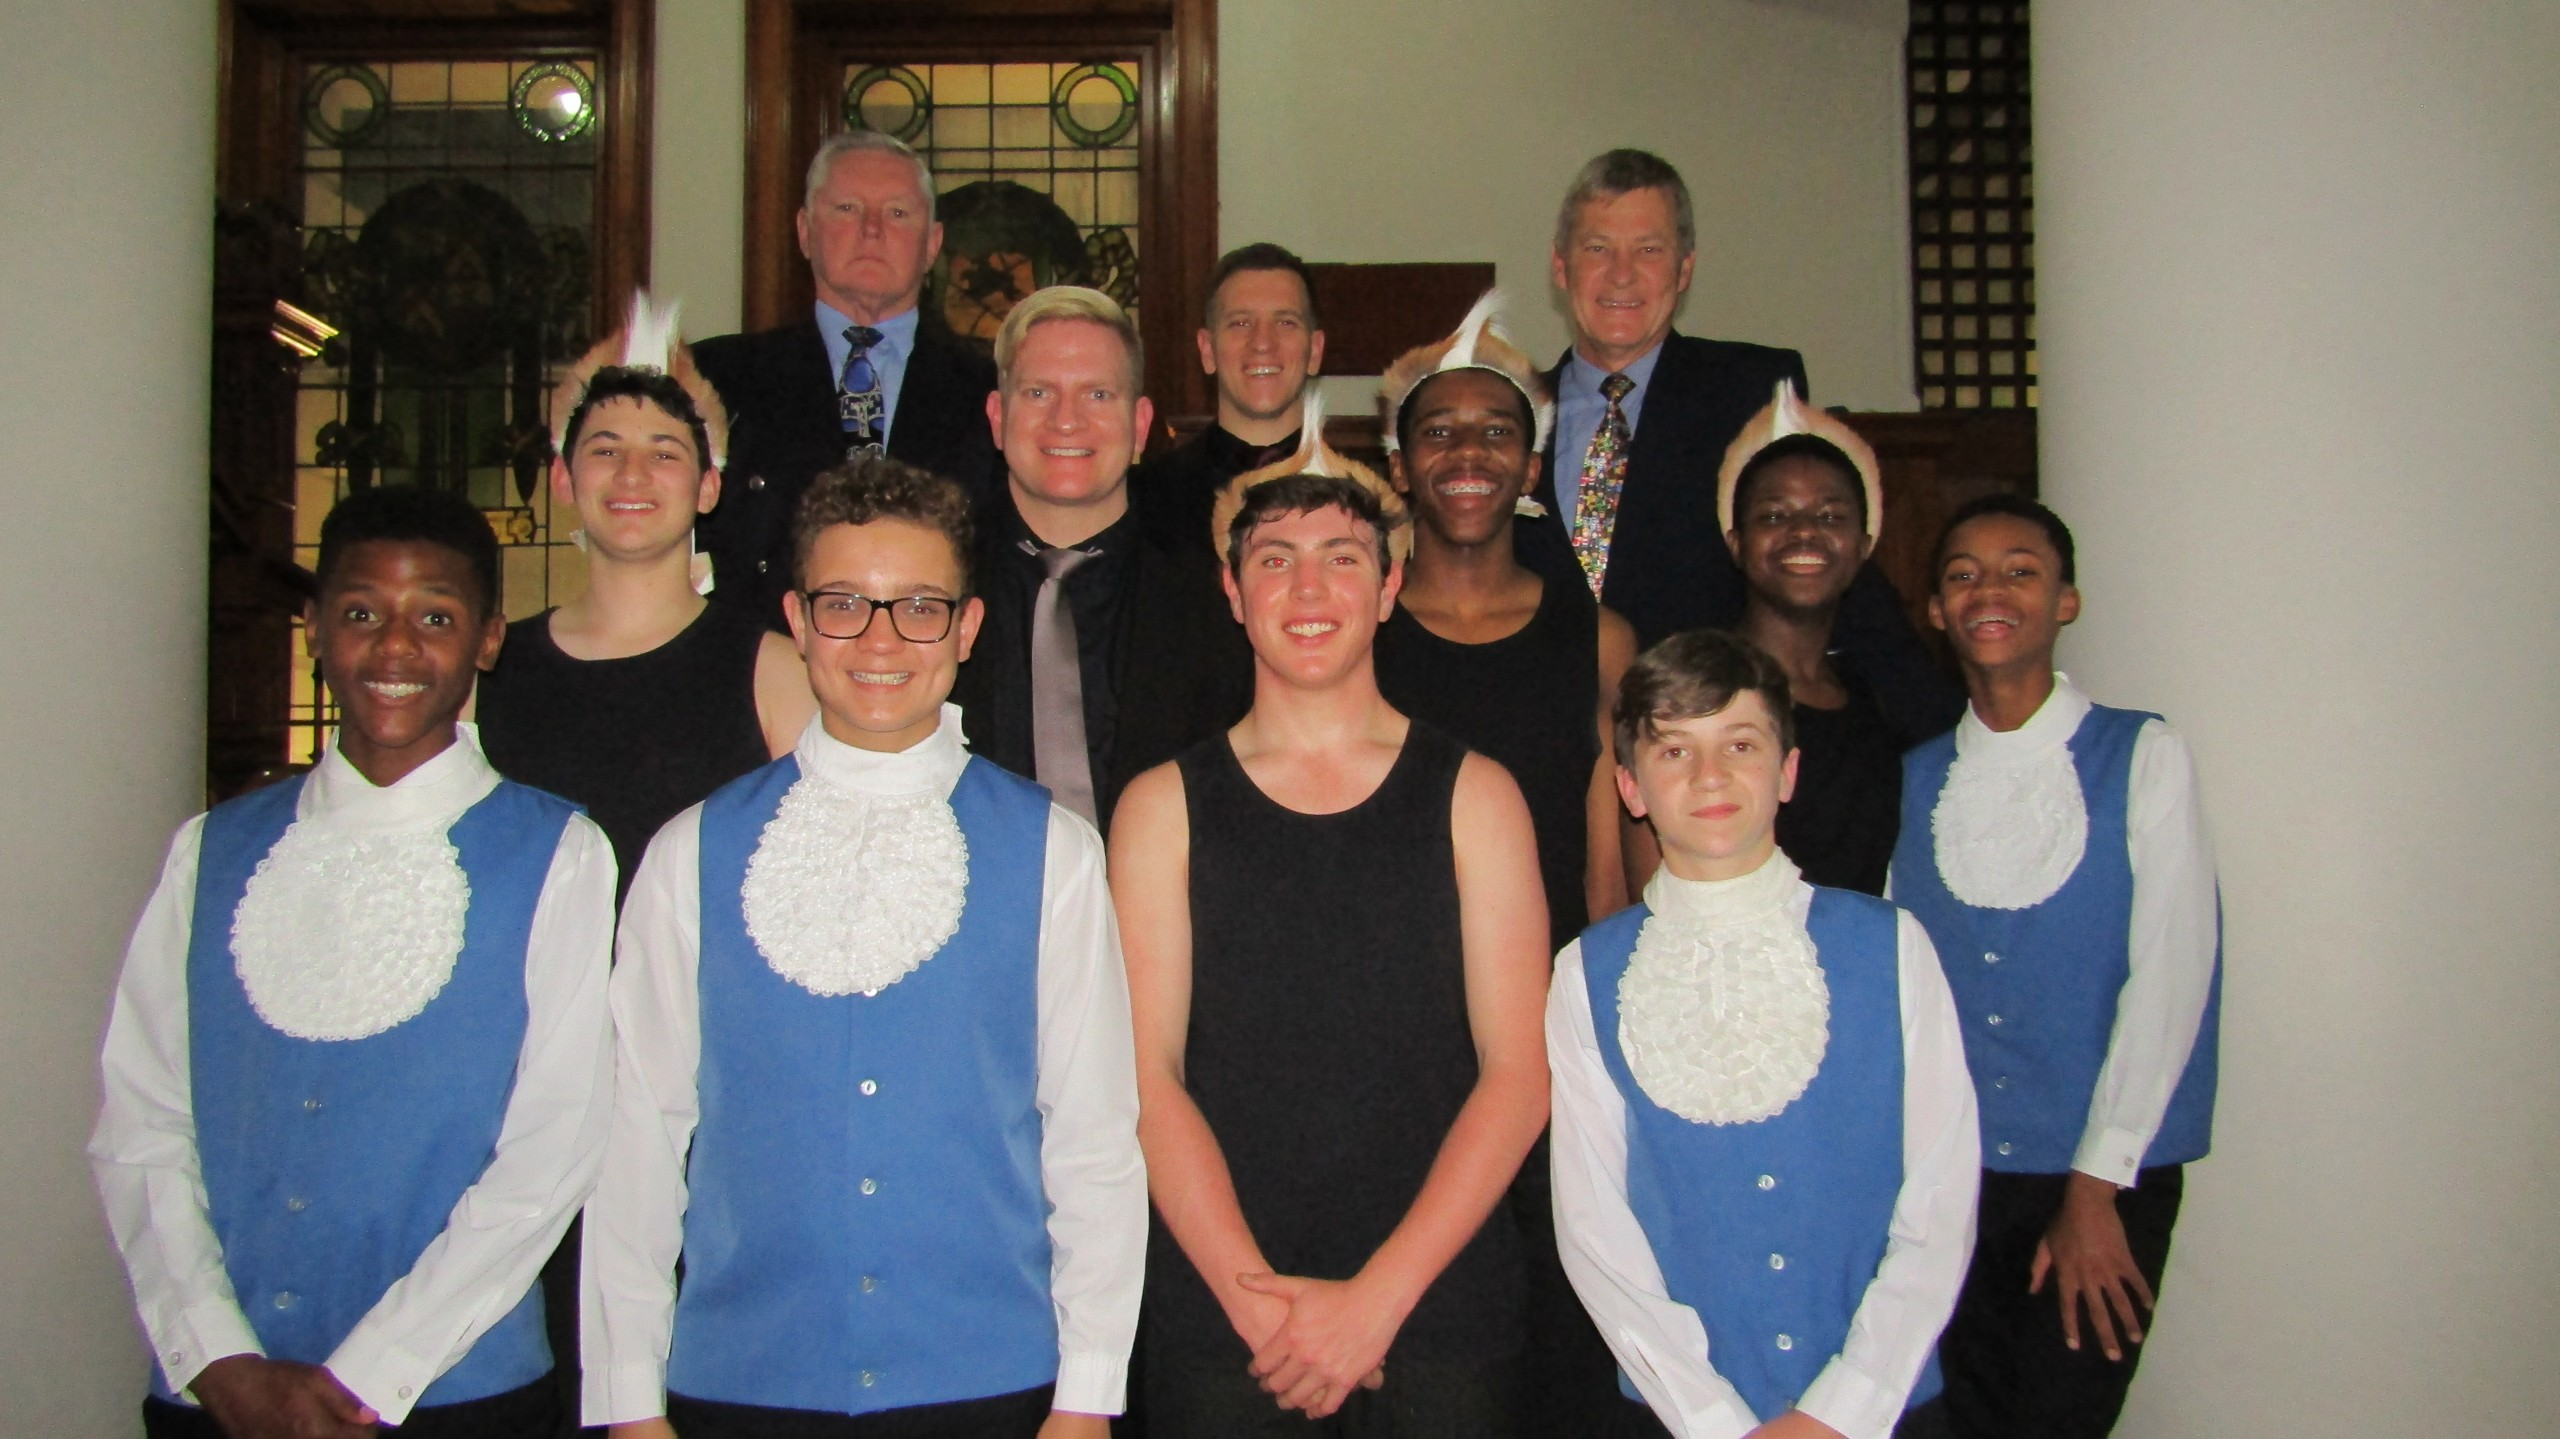 Two local Choirs take audience's breath away